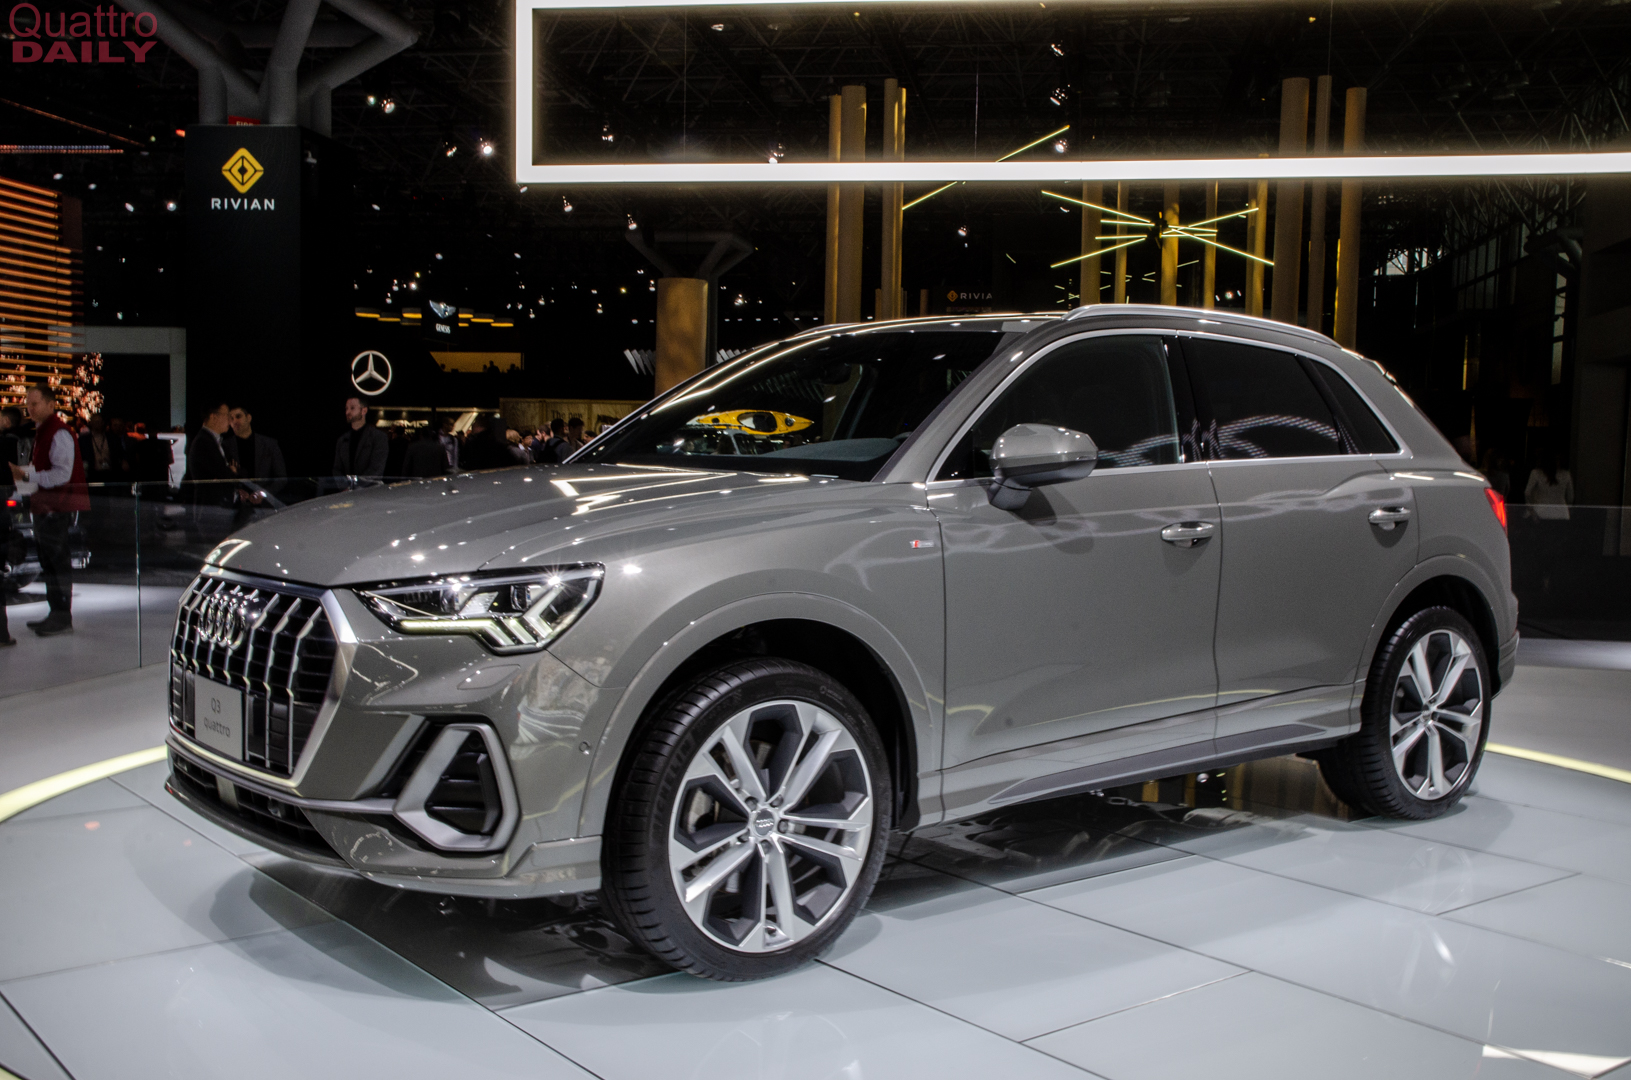 Build A Car >> 2019 NY Auto Show: 2019 Audi Q3 is here to take on the BMW X1